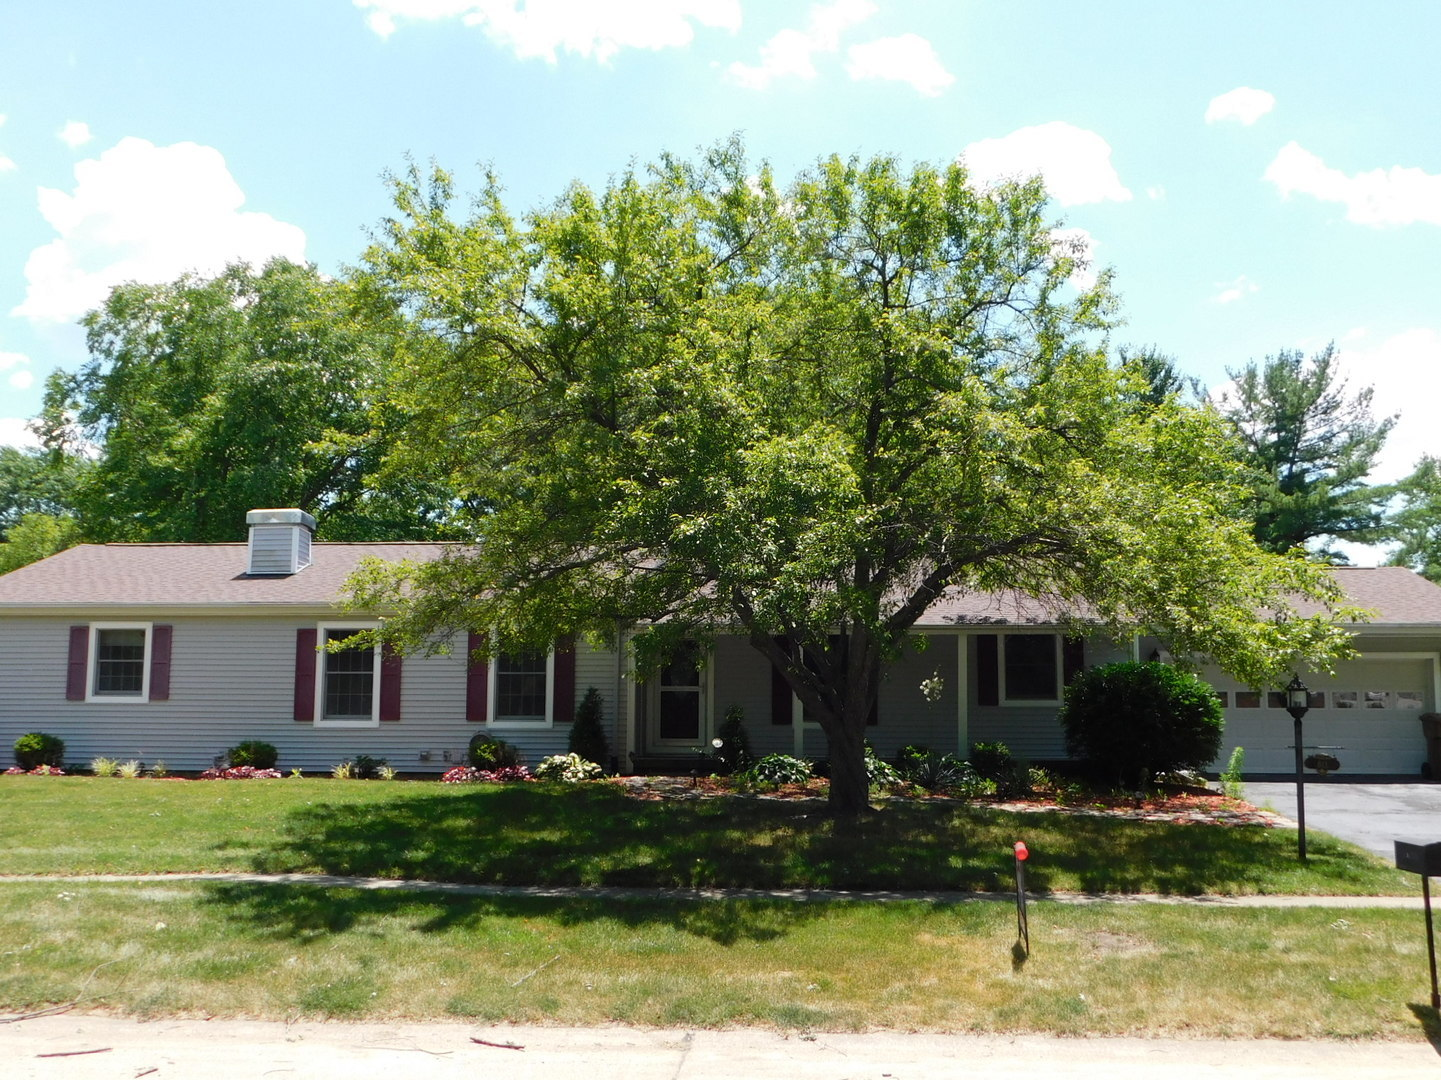 811 Ayrshire Drive, Champaign in Champaign County, IL 61820 Home for Sale